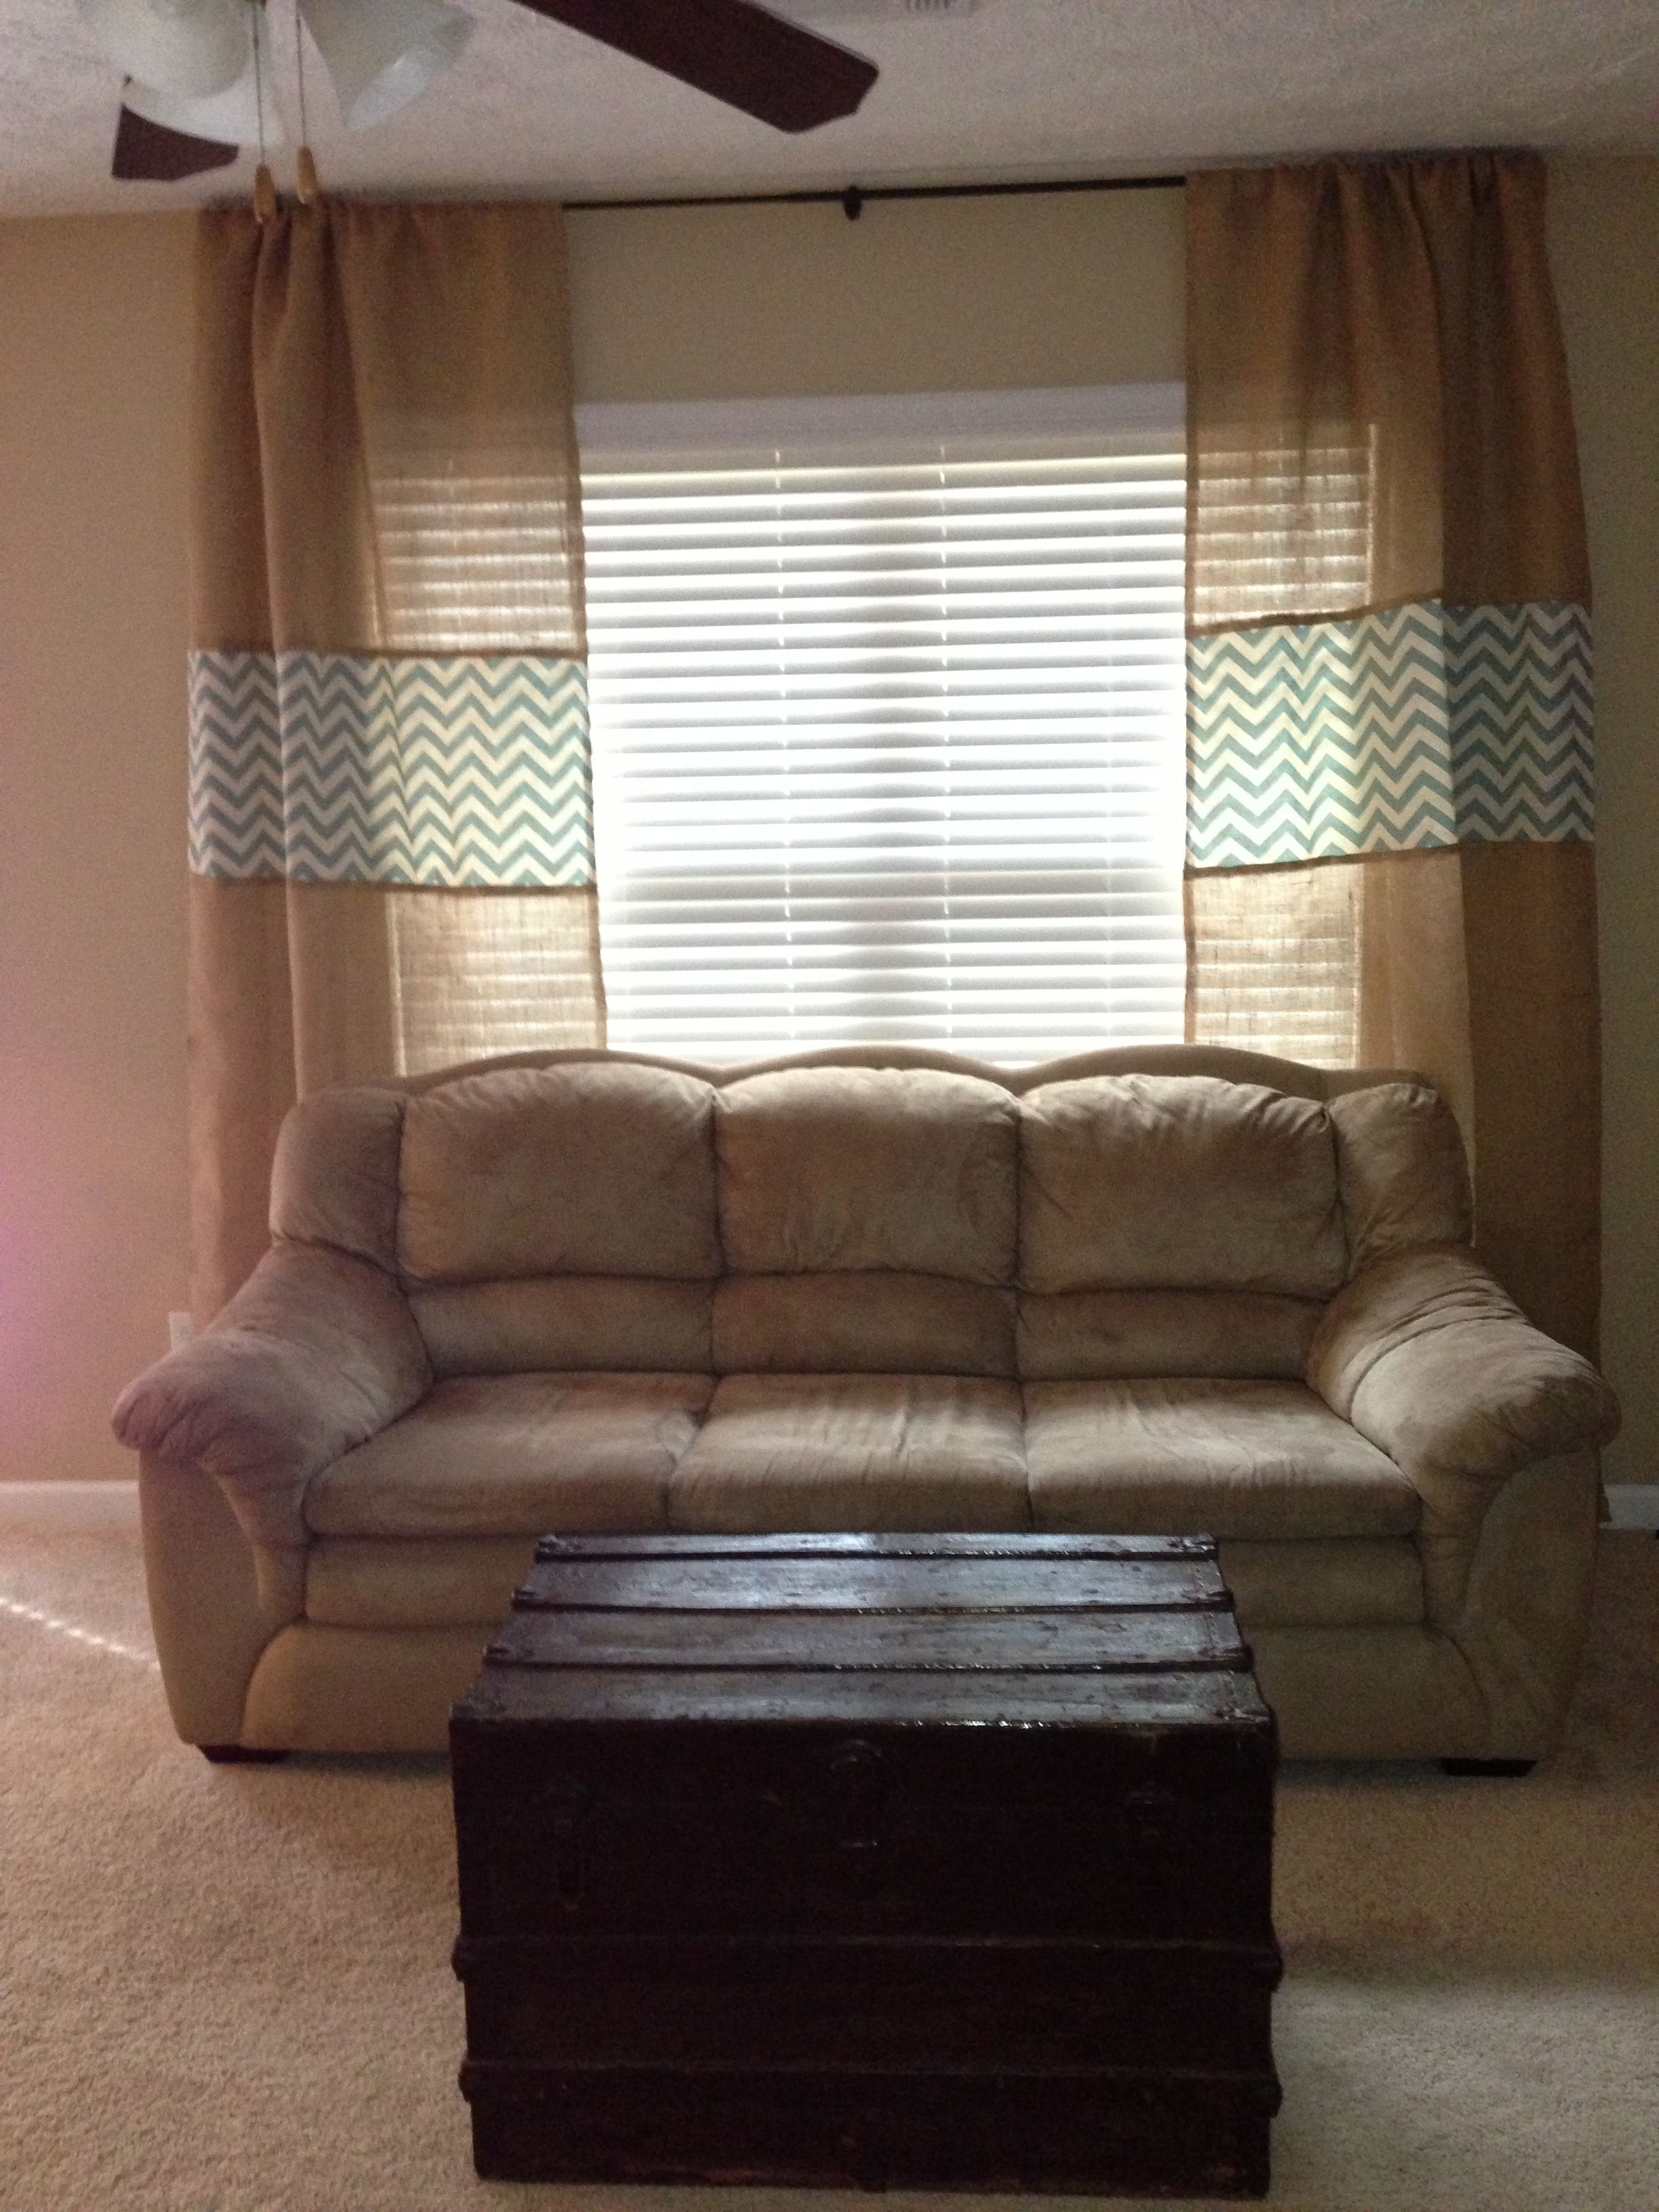 Burlap And Chevron Curtains Perfect For My Living Room For The Home Pinterest Chevron